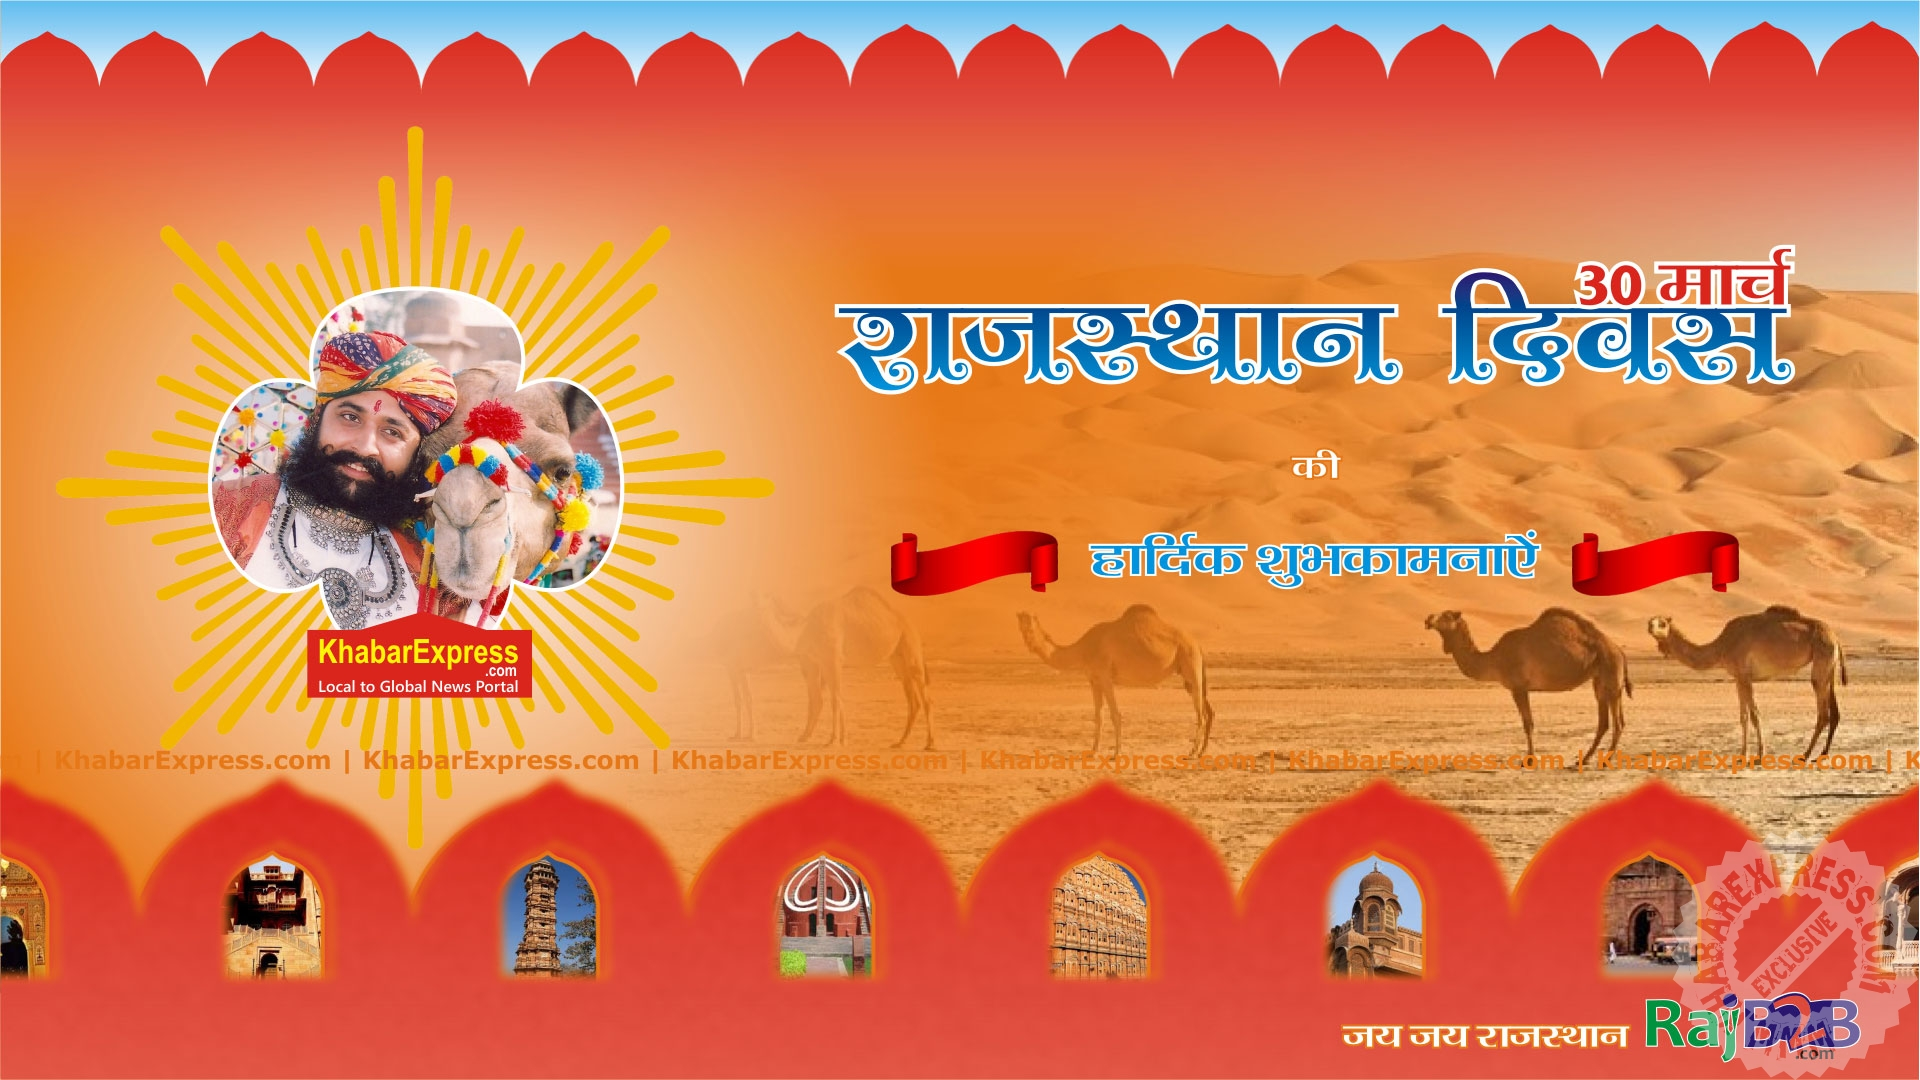 Latest Wallpaper eCard of Rajasthan Day 30 March